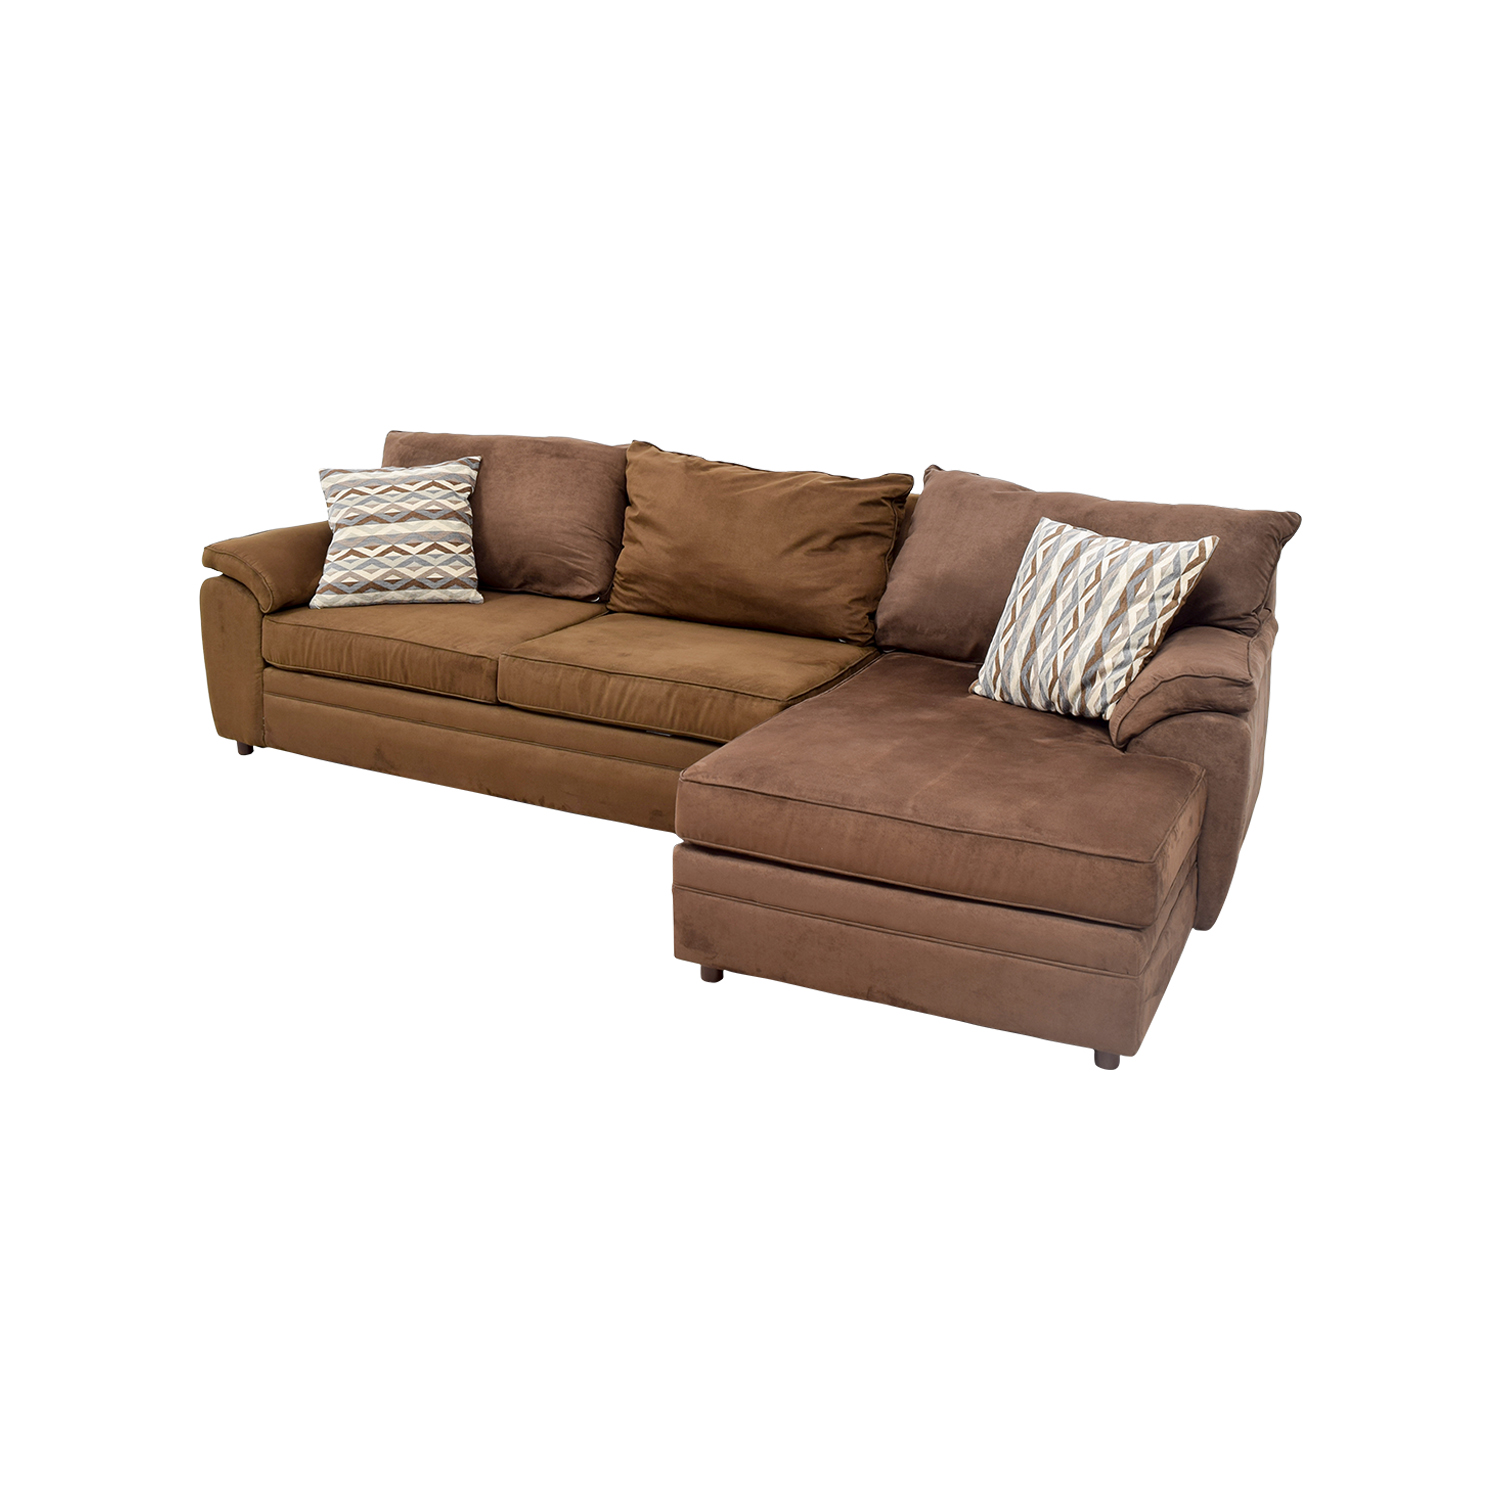 46 off bob 39 s furniture bob 39 s furniture brown chaise for Brown sectional with chaise